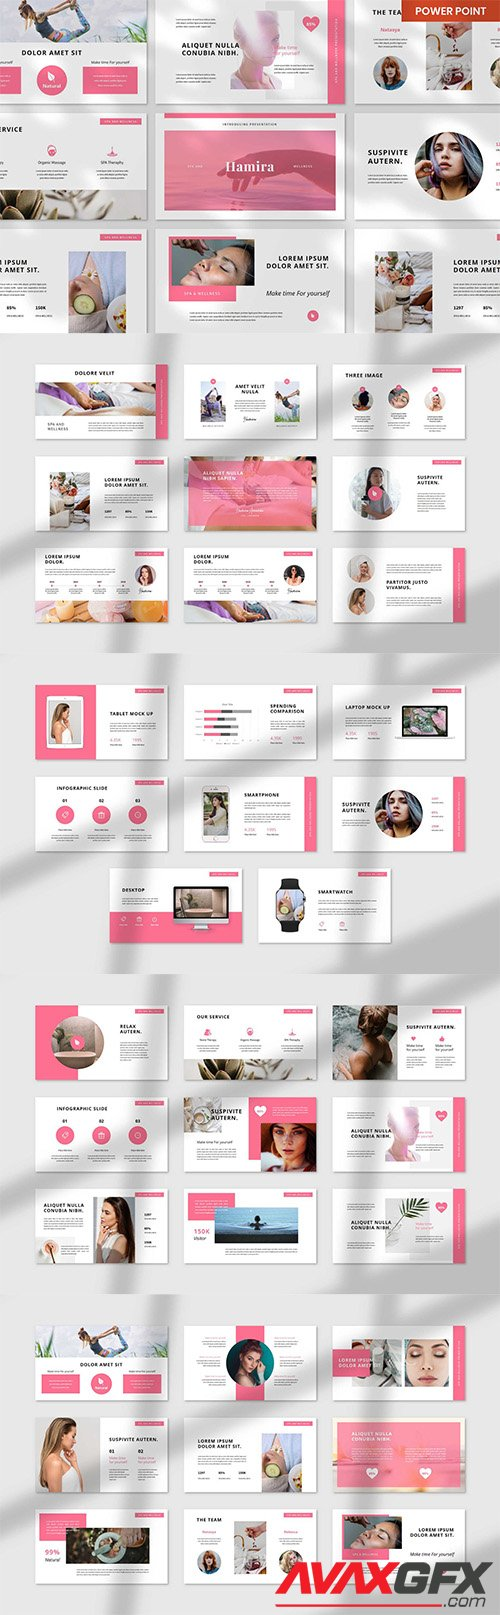 Hamira Spa & Wellness PowerPoint, Keynote and Google Slides Template